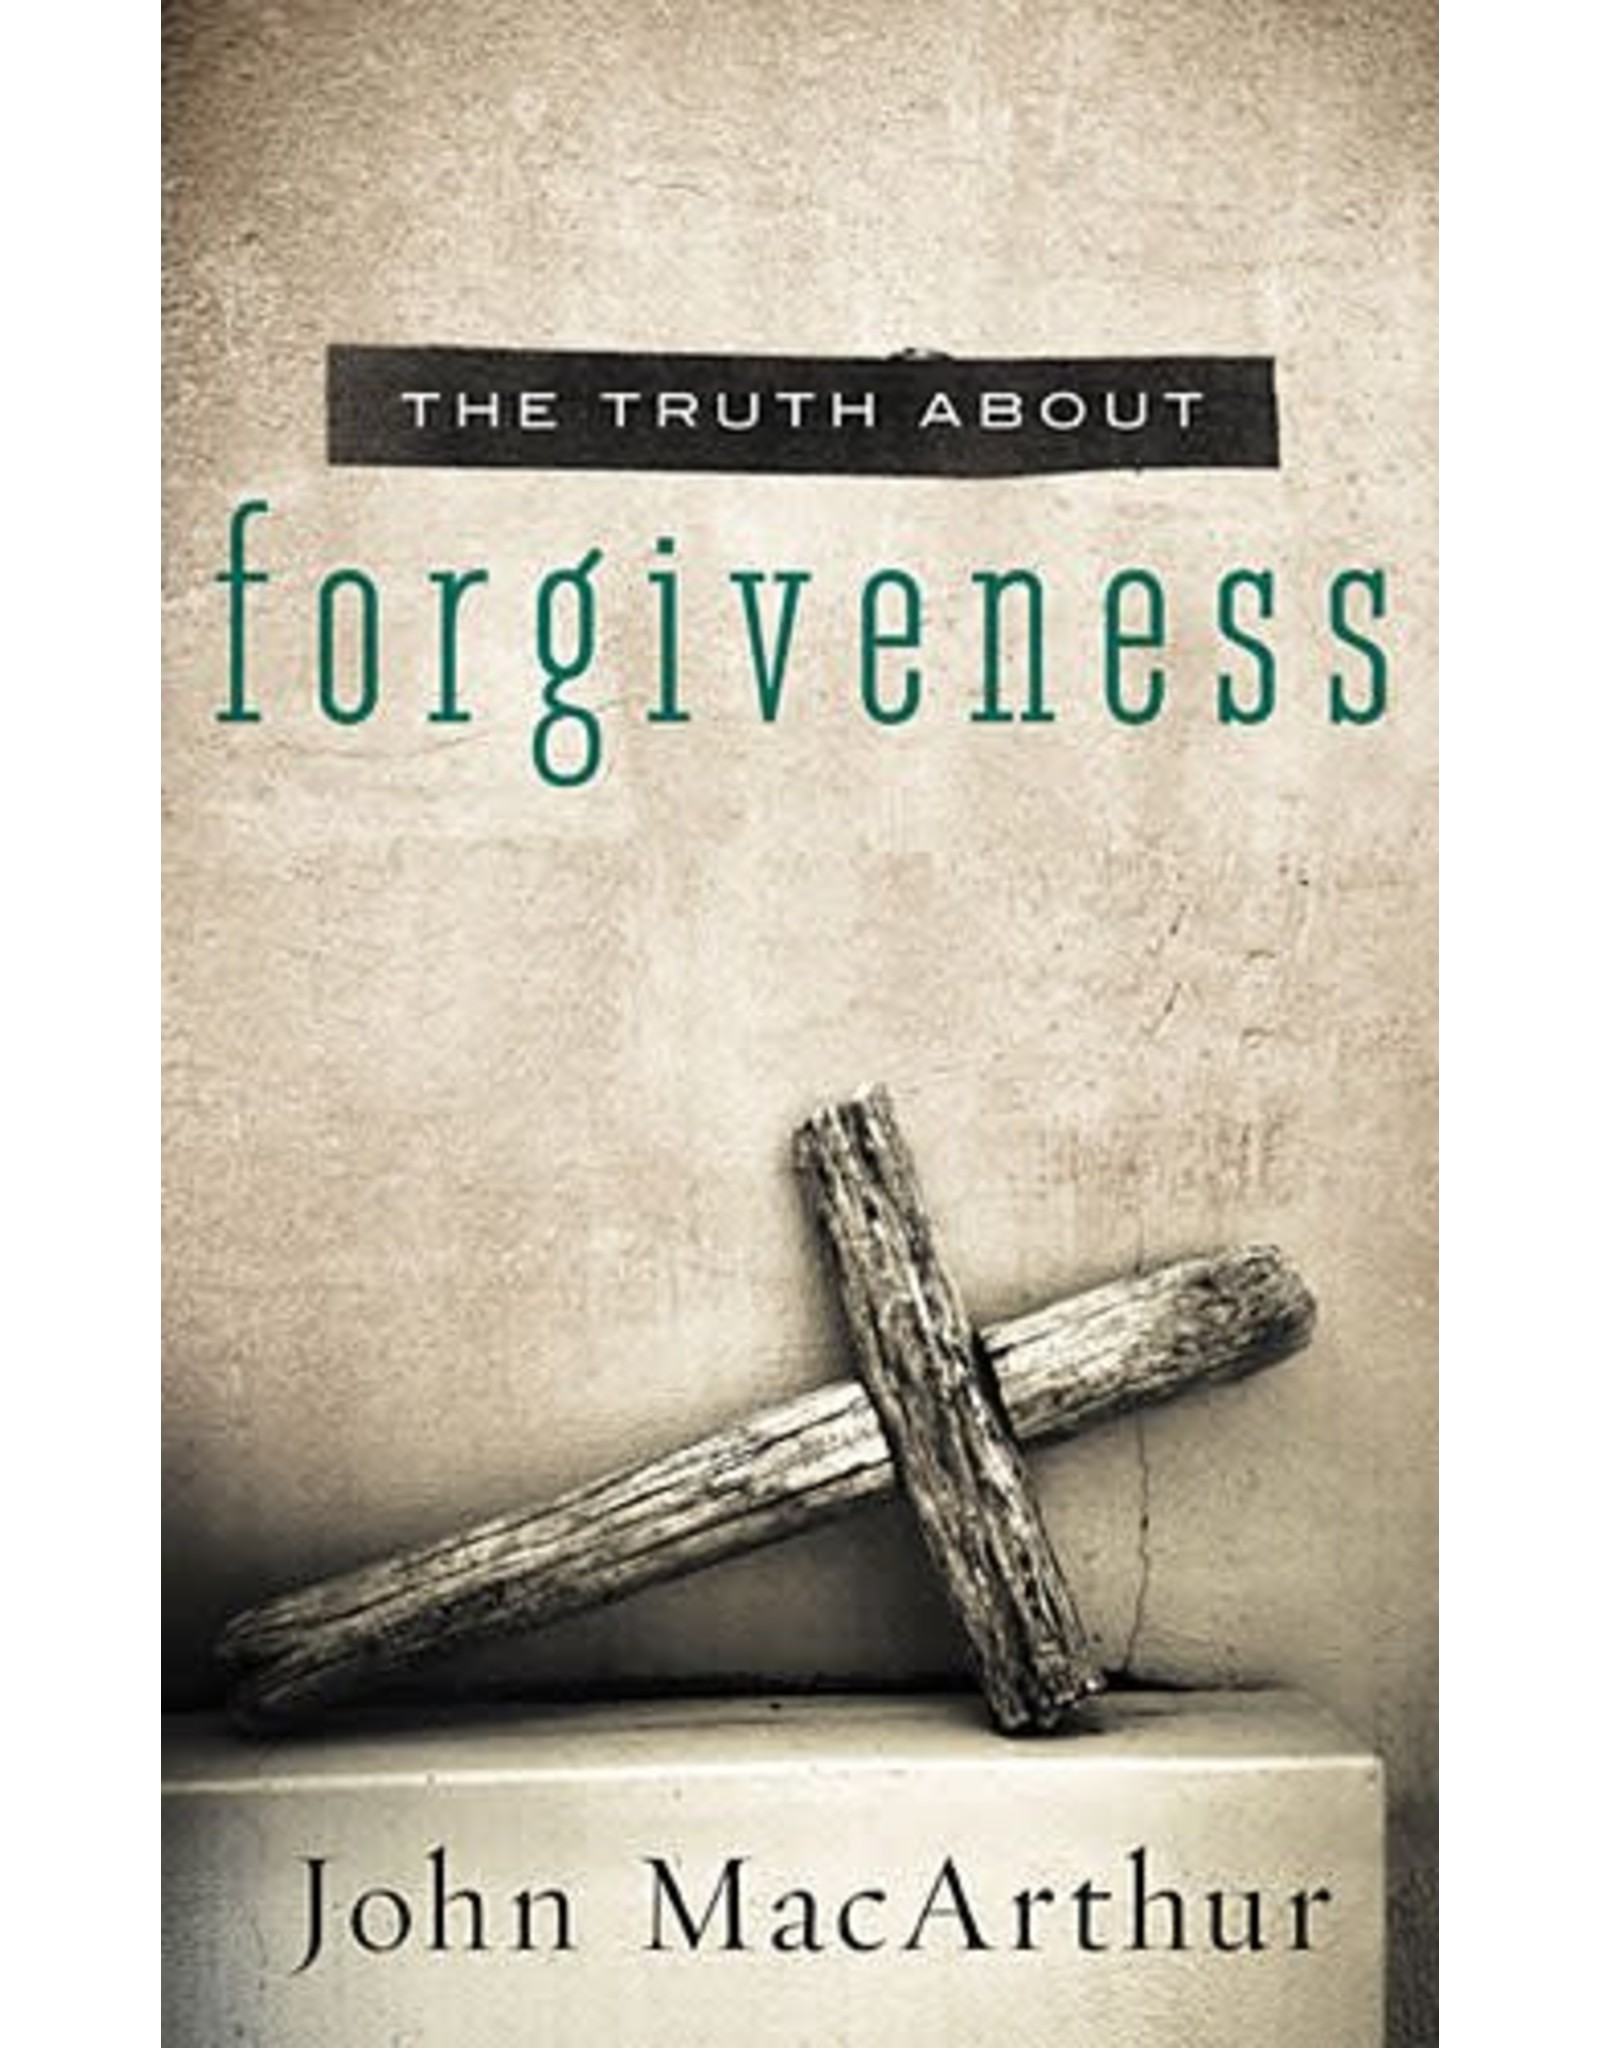 Harper Collins / Thomas Nelson / Zondervan The Truth About Forgiveness